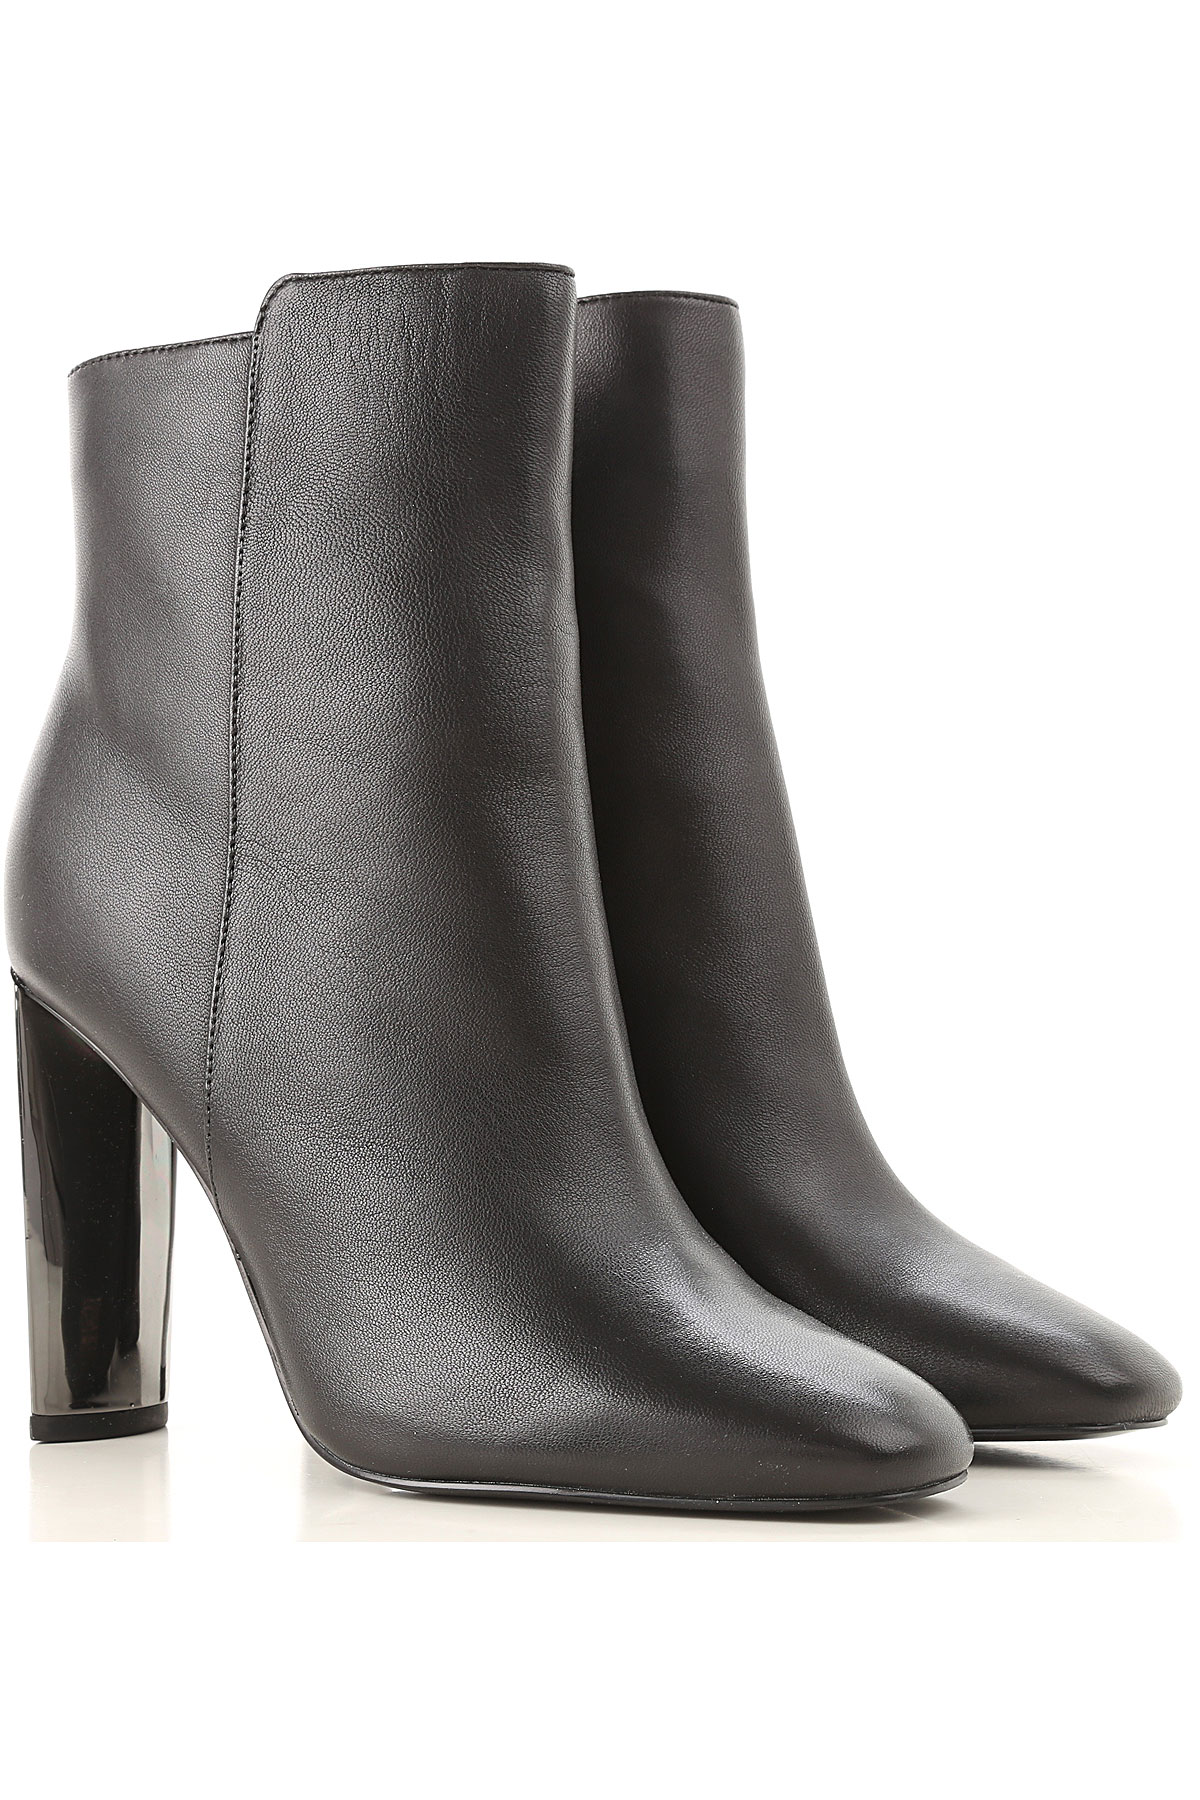 Image of Guess Boots for Women, Booties, Black, Leather, 2017, 6 7 8 9